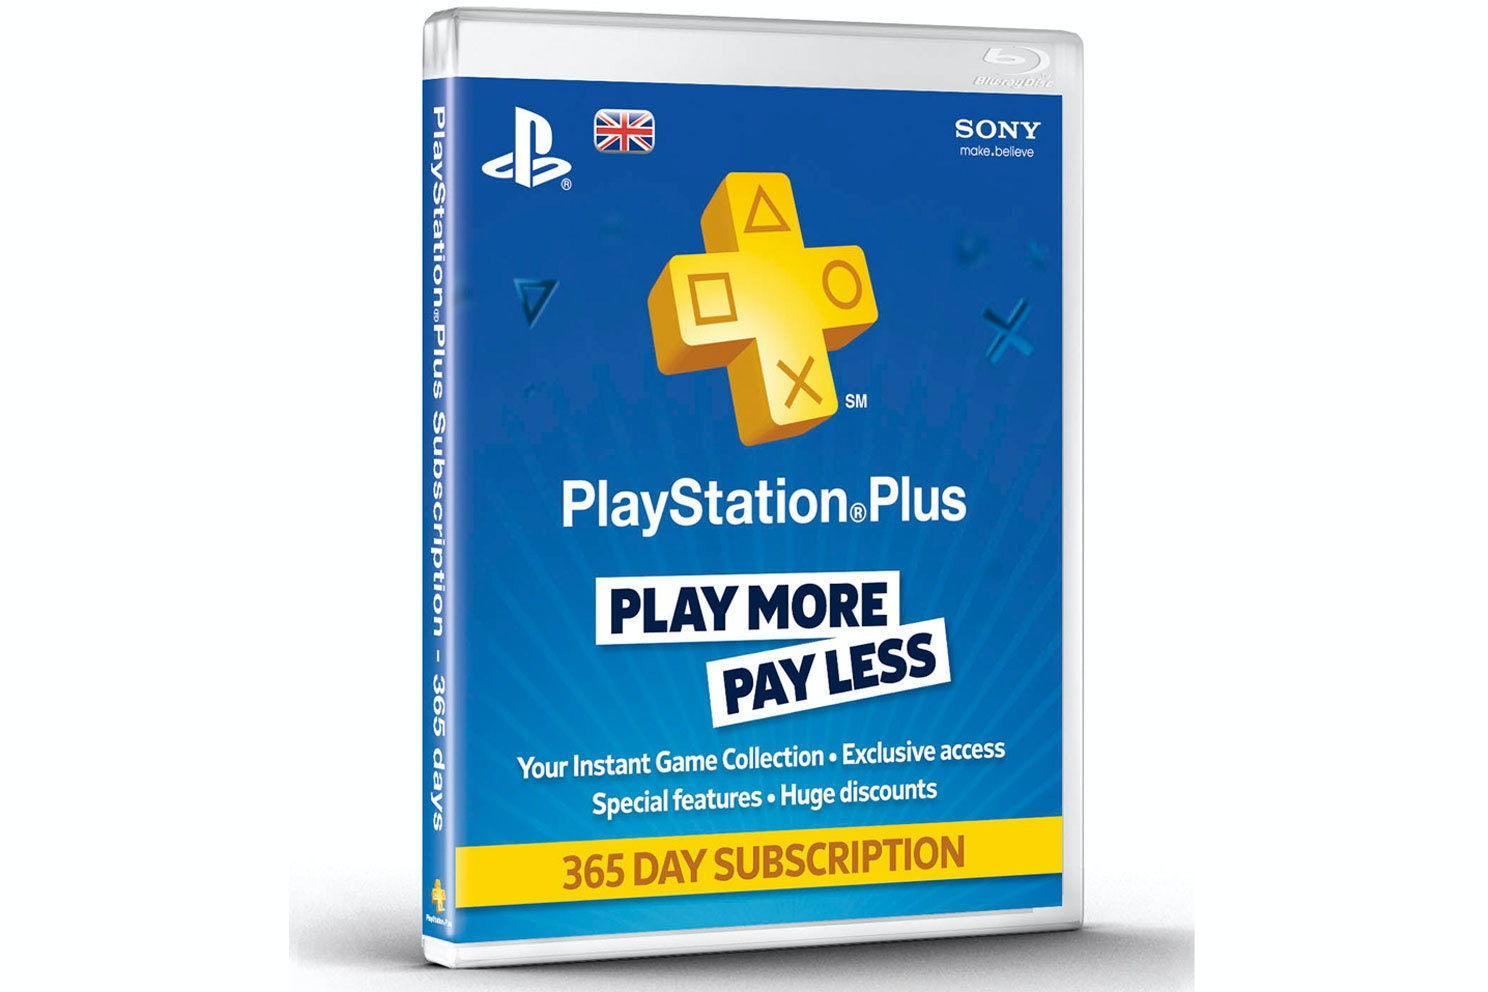 Playstation Plus | 365 Day Subscription